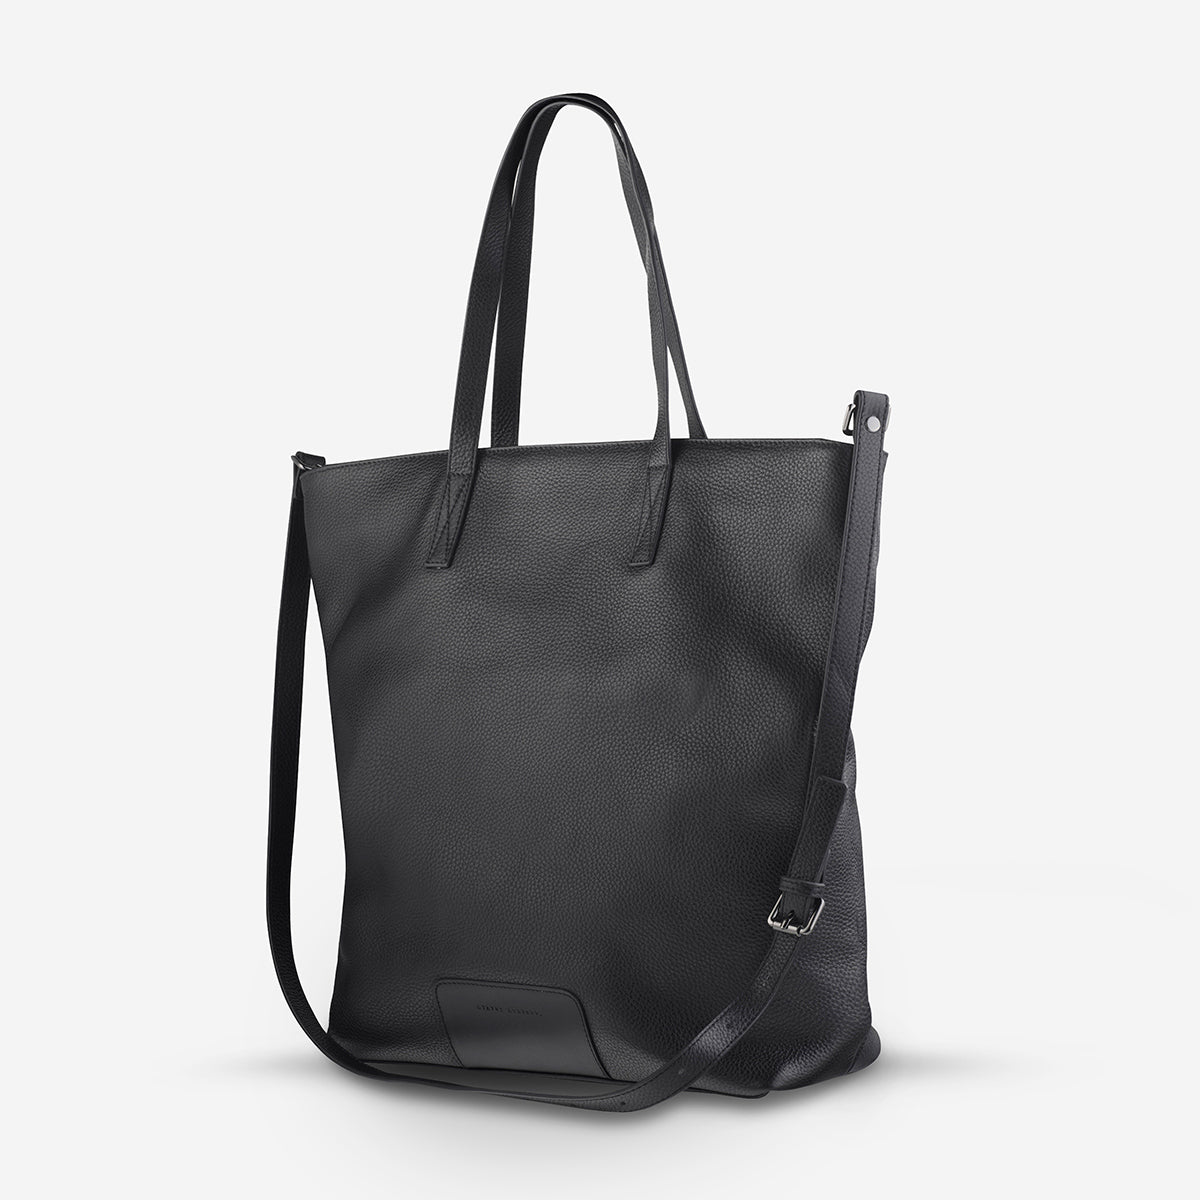 Status Anxiety Fire On The Vine Women's Large Leather Tote Bag - Black